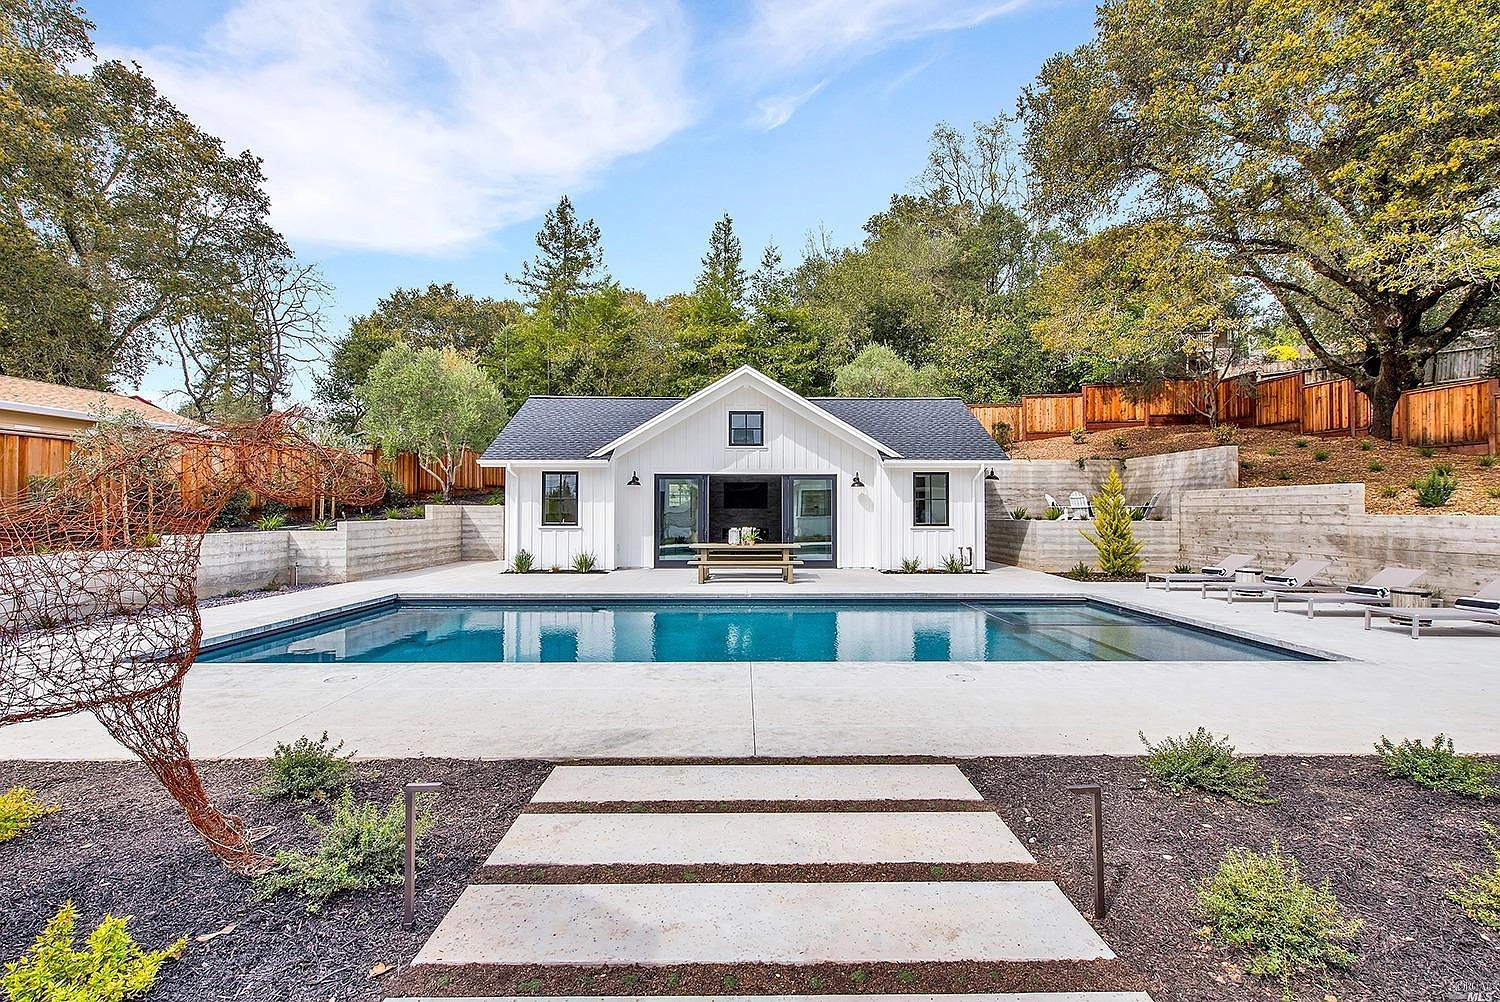 519 Reed Ct, Healdsburg, CA 95448 - $3,595,000 home for sale, house images, photos and pics gallery